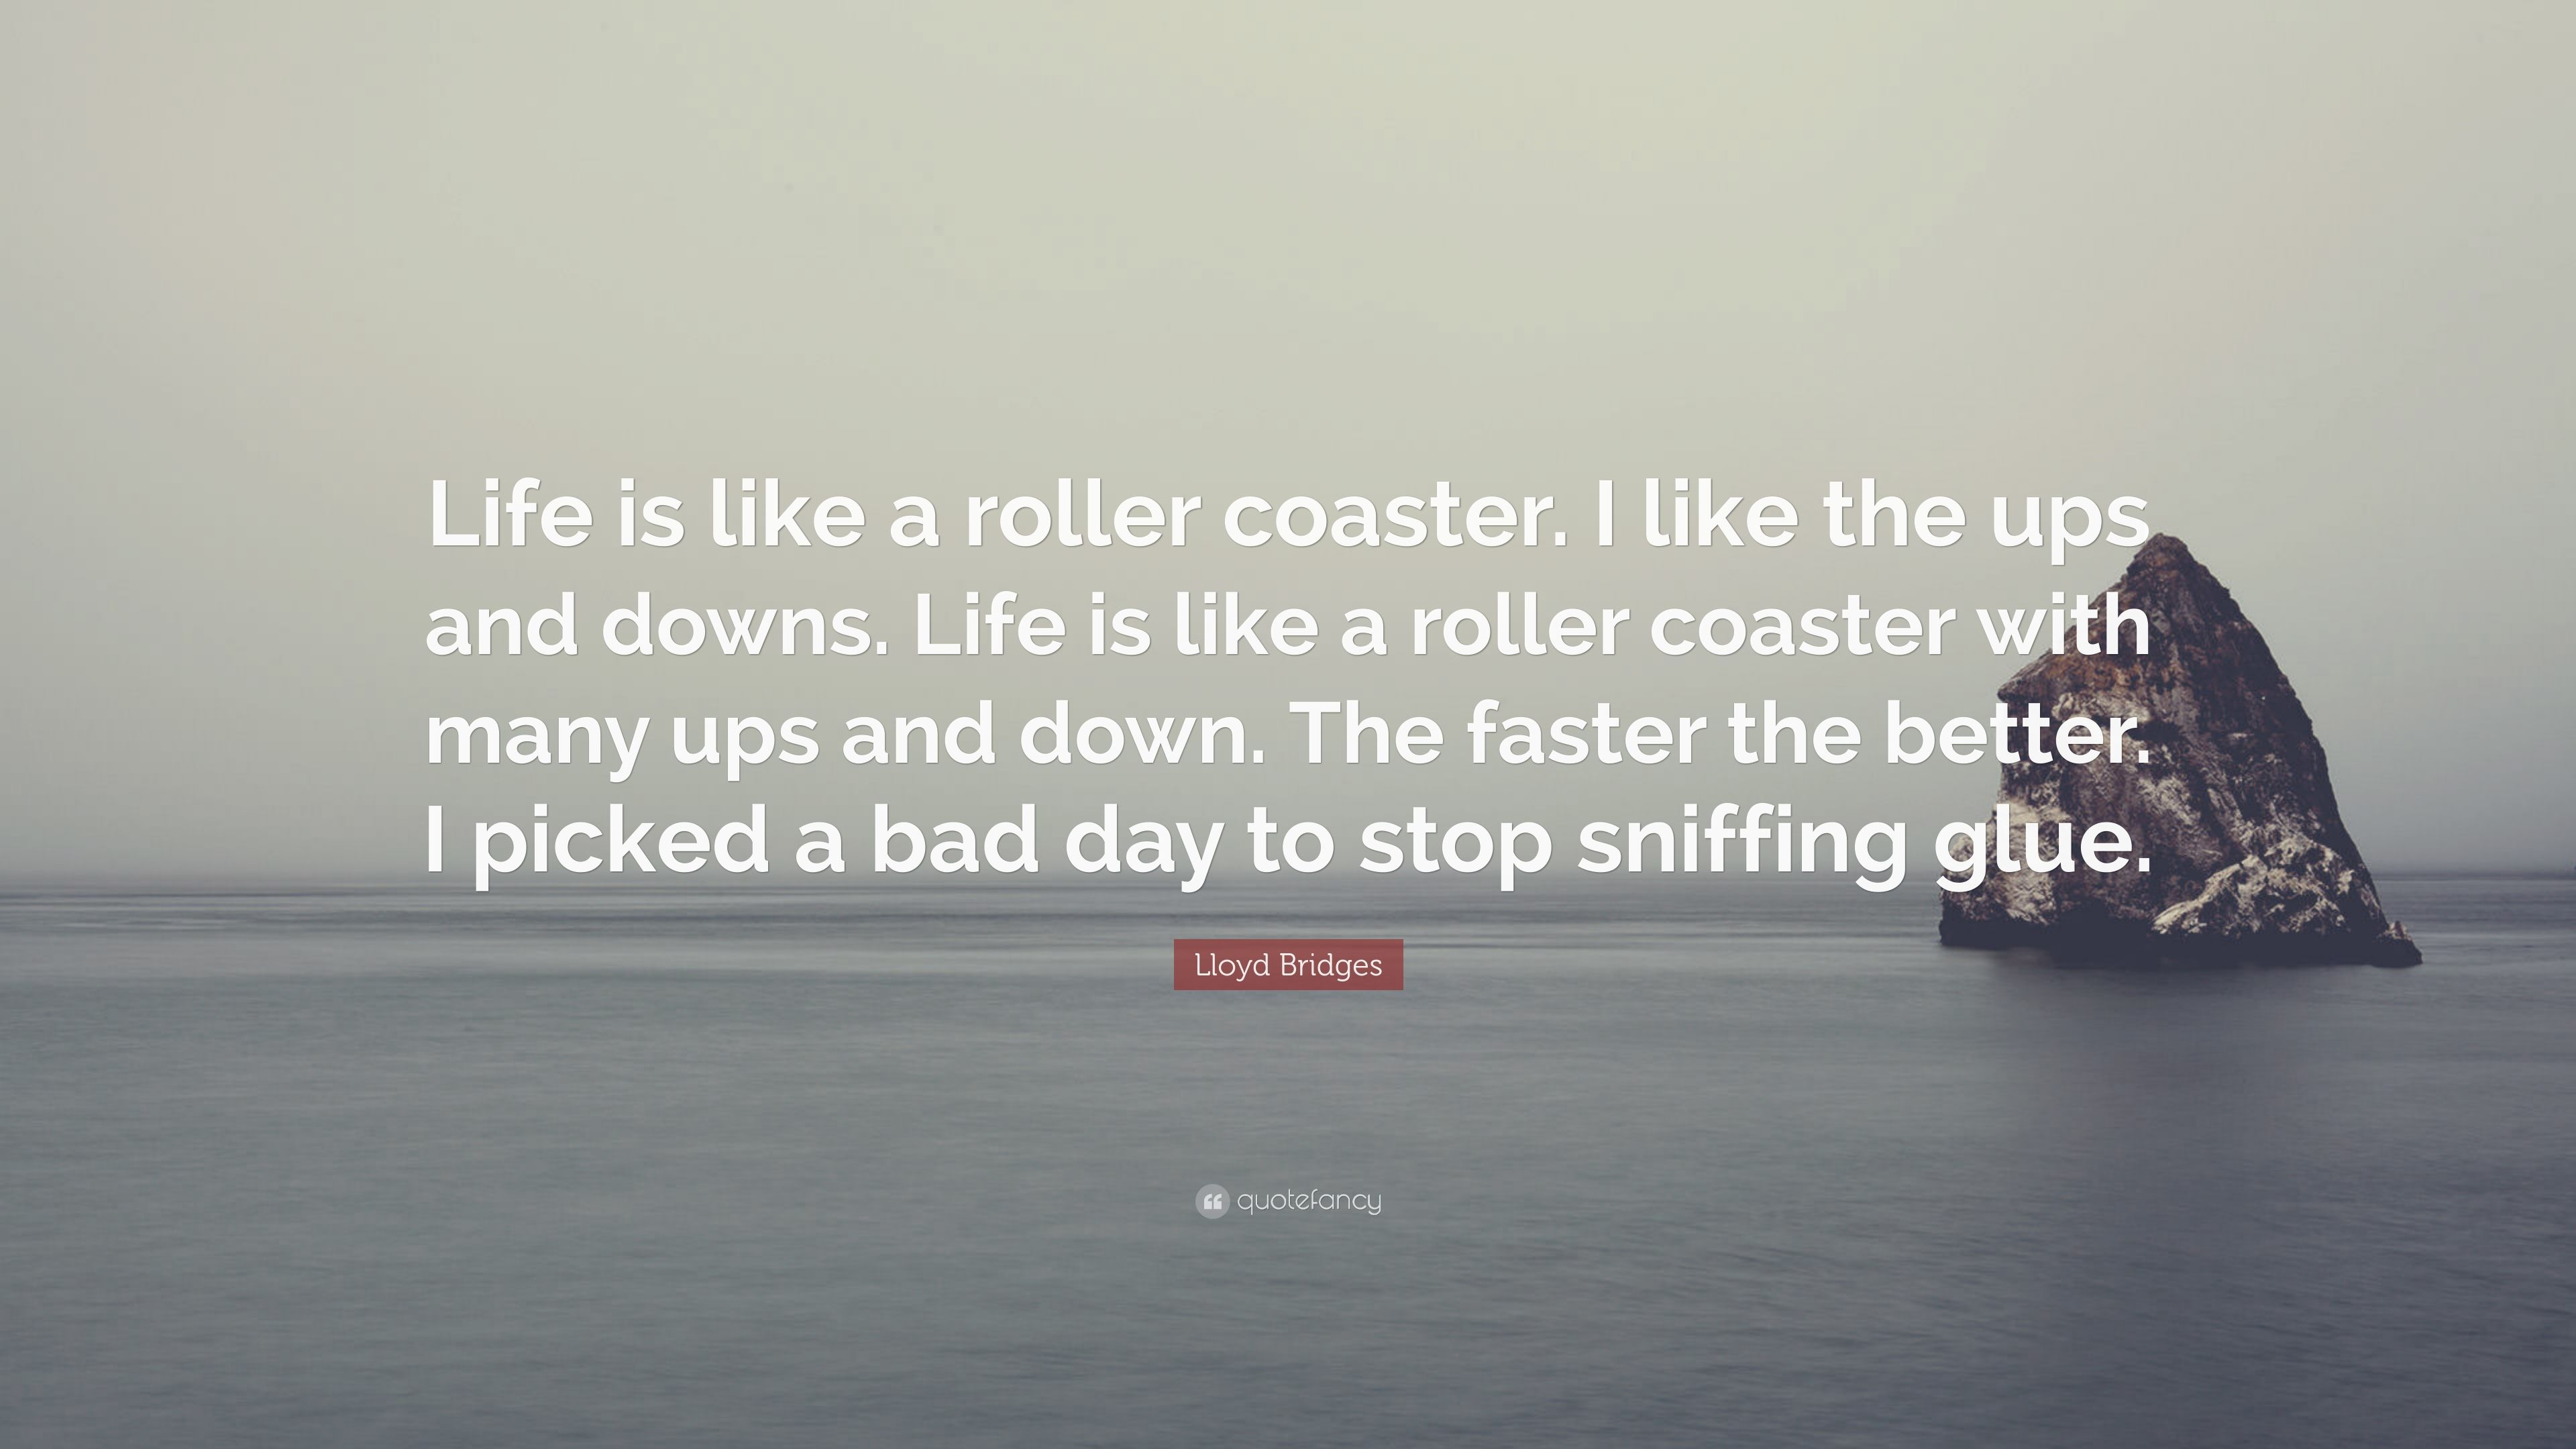 Lloyd Bridges Quote Life Is Like A Roller Coaster I Like The Ups And Downs Life Is Like A Roller Coaster With Many Ups And Down The Faste 7 Wallpapers Quotefancy